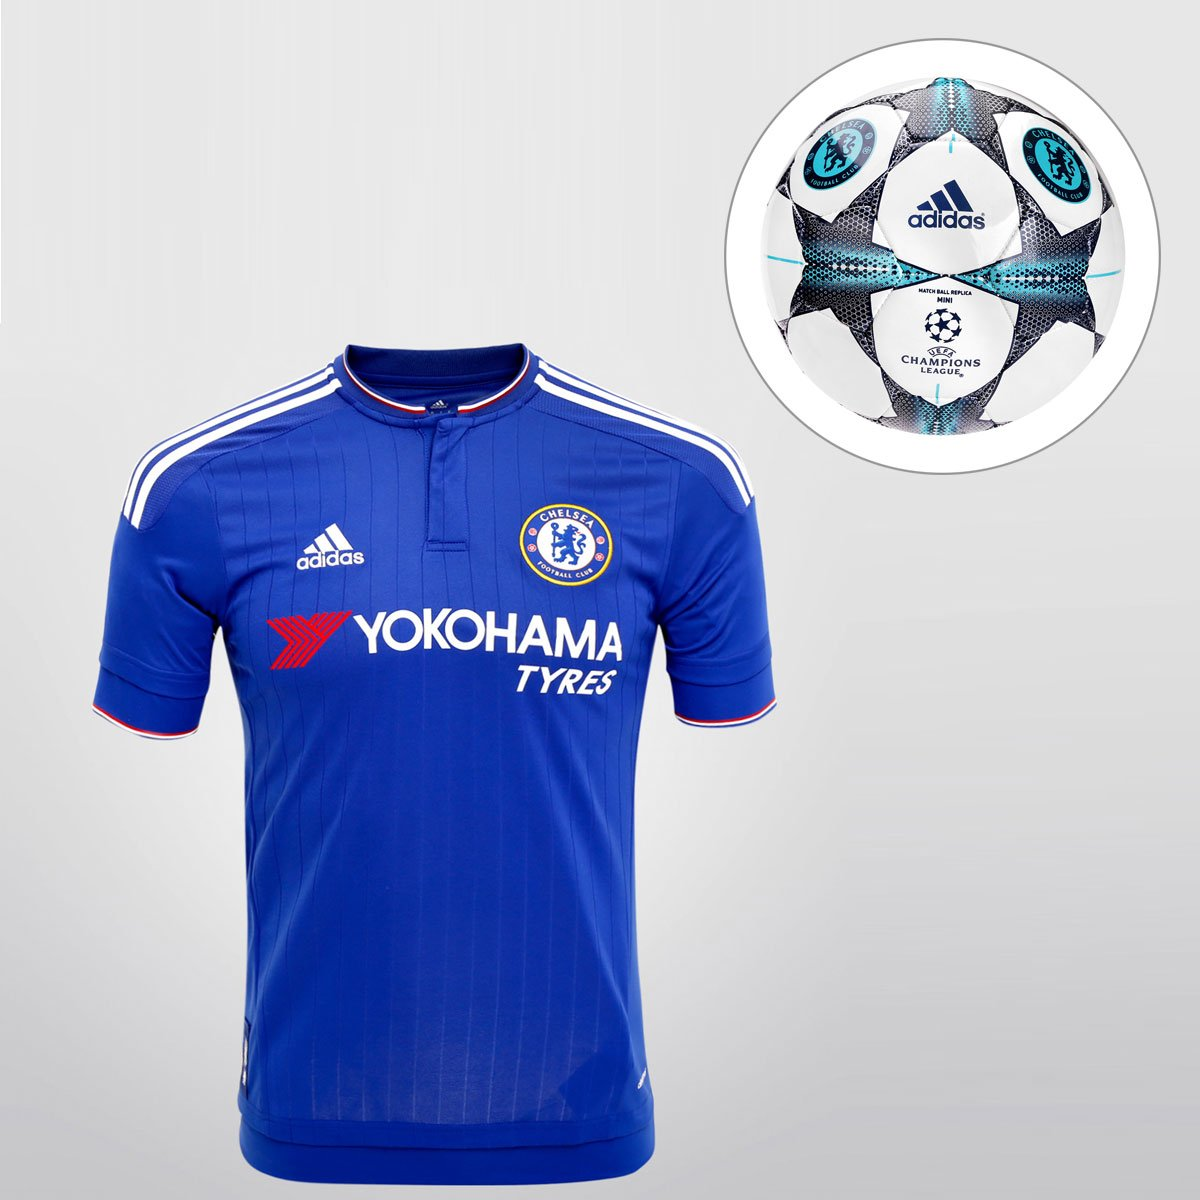 Kit Camisa Adidas Chelsea Home 15 16 s nº + Minibola Adidas Chelsea Finale  15 - Compre Agora  aec0e75931f47